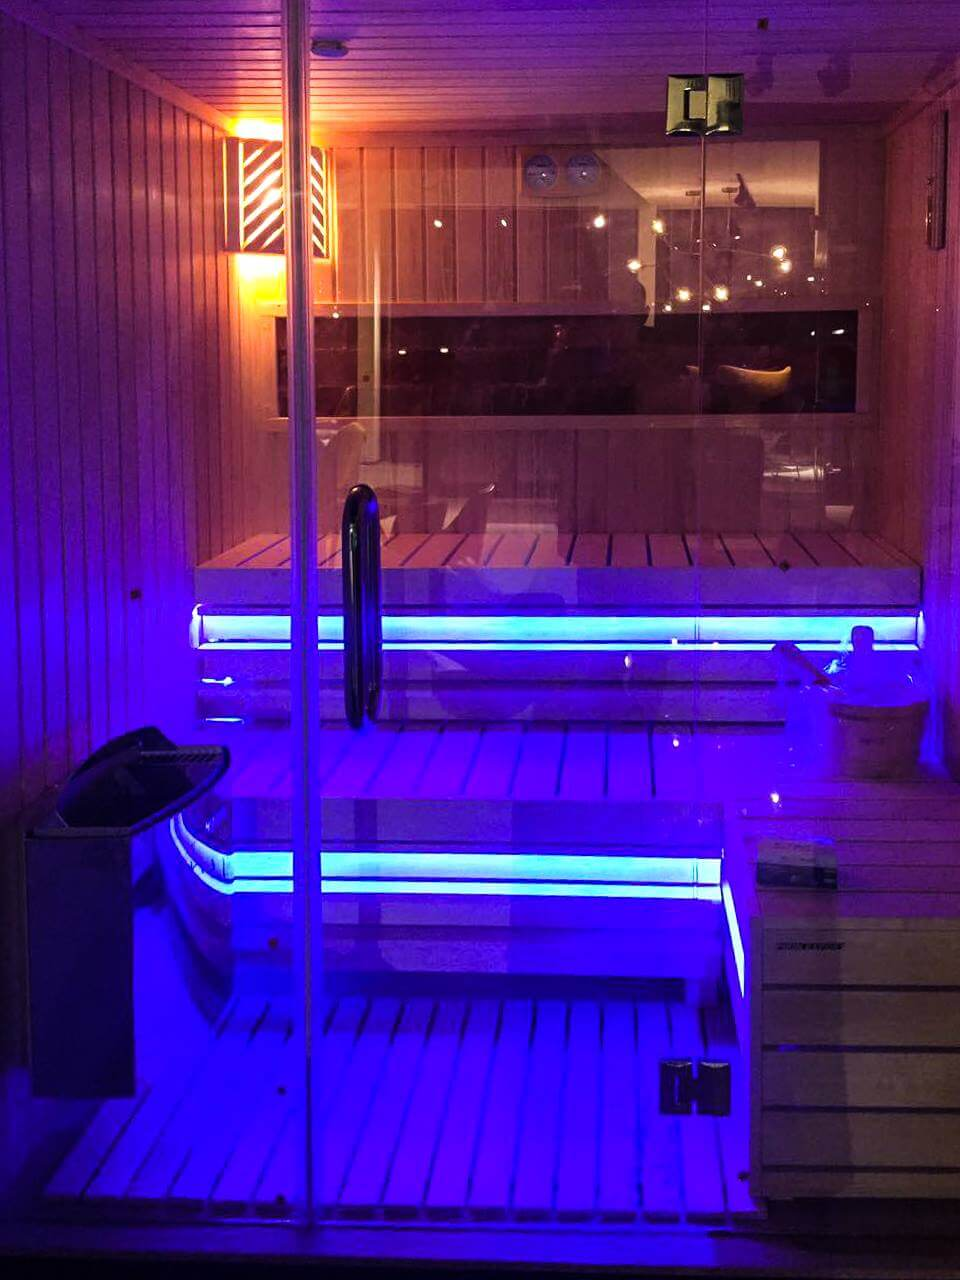 Sauna 24 Spa Sauna Pool Jacuzzi 24 Pirin Export